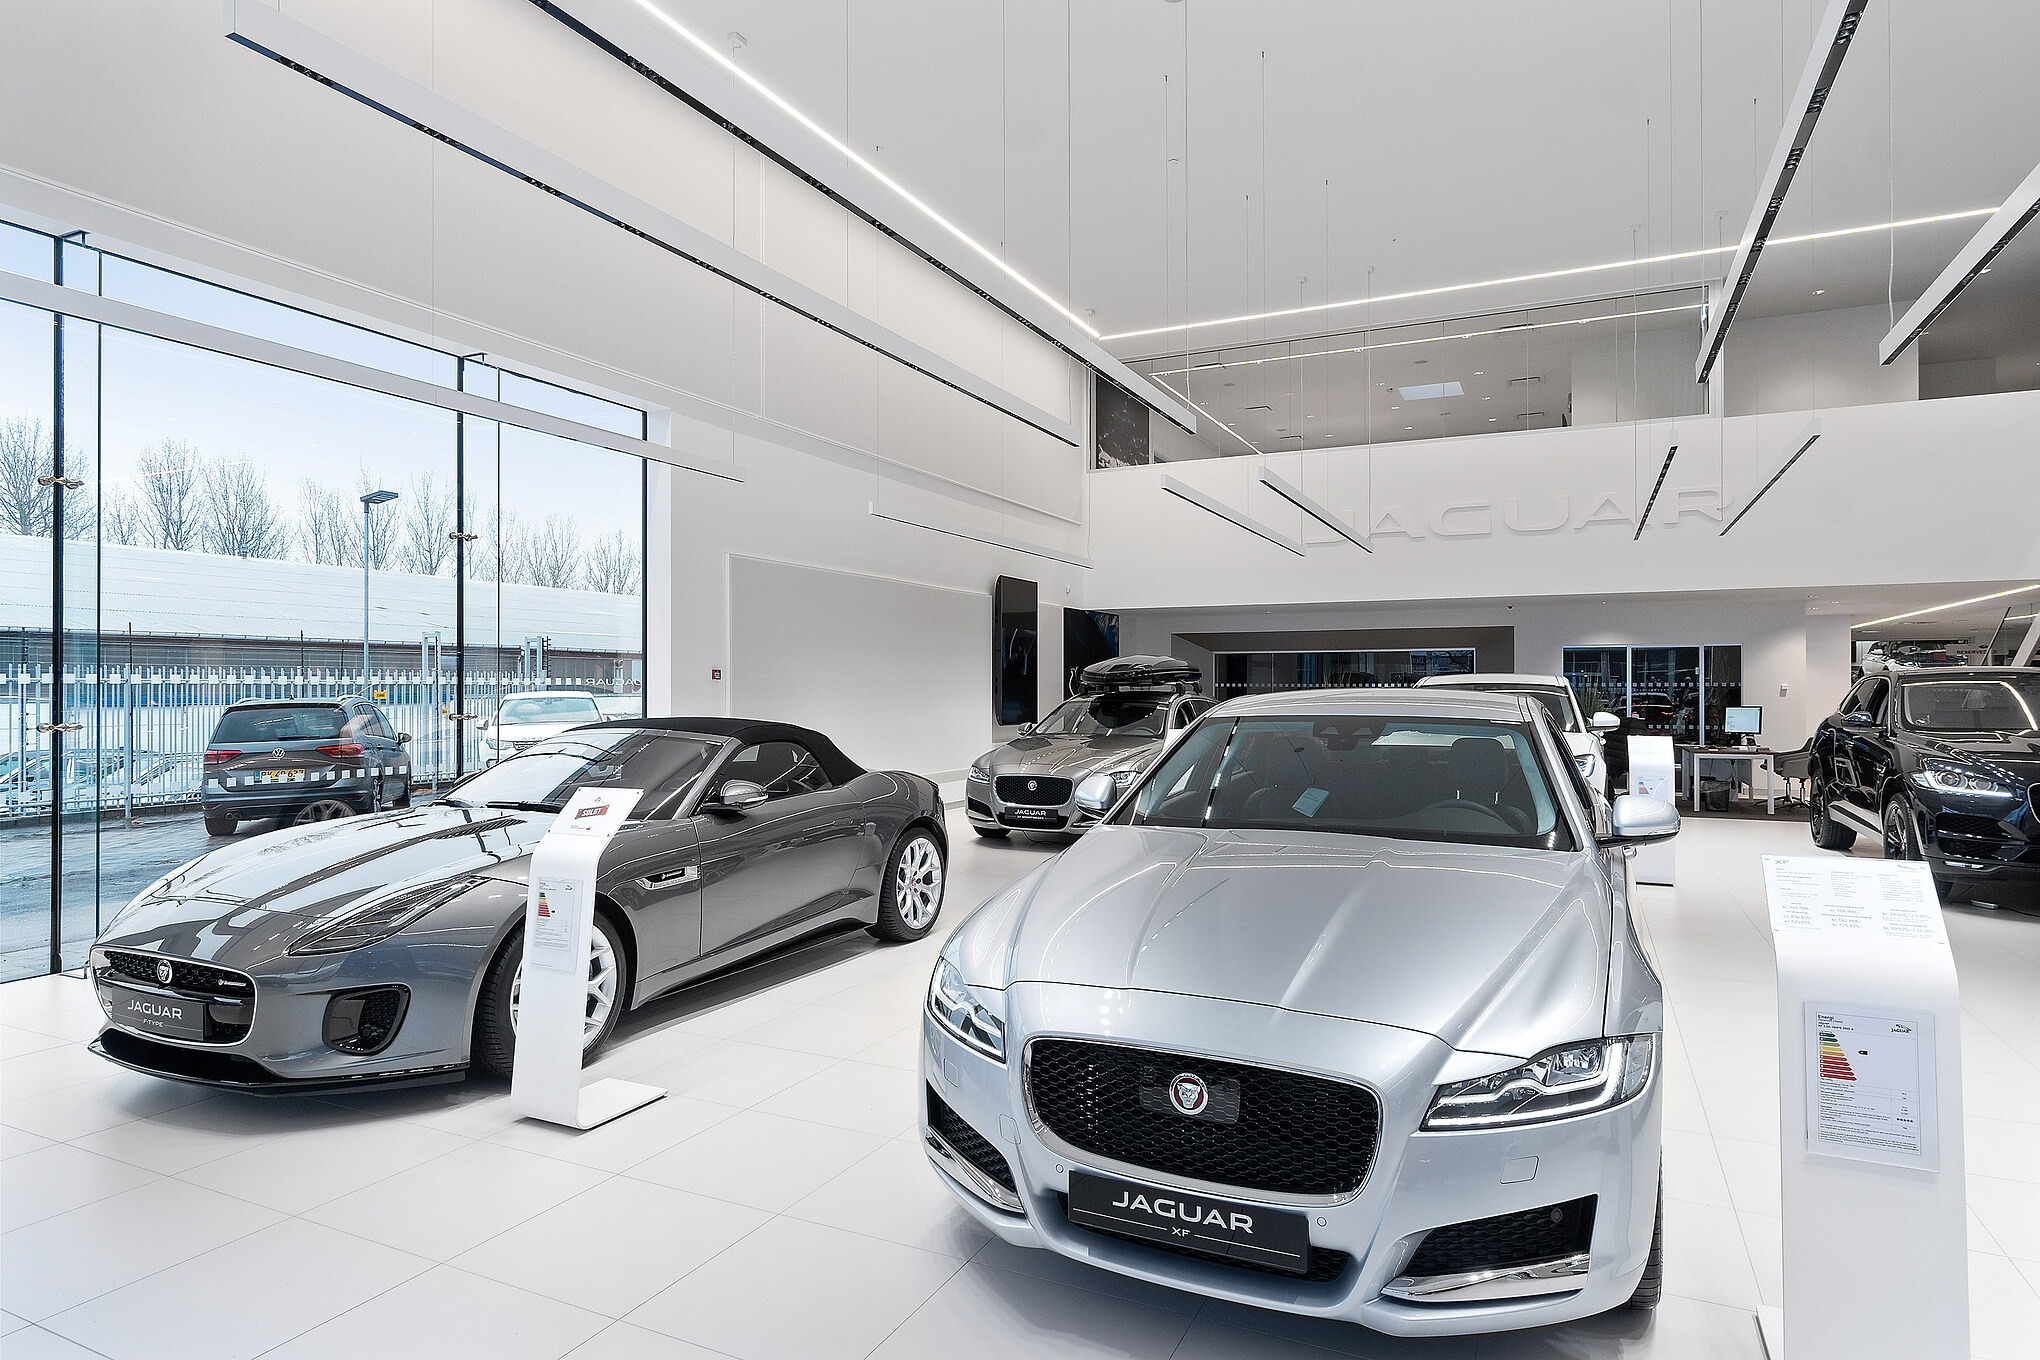 Jaguar showroom at British MotorGroup Søborg. On the walls white acoustic Soundscapes are mounted and slick jaguar cars fill out the room. All acoustic solutions made by Intelligent Space.